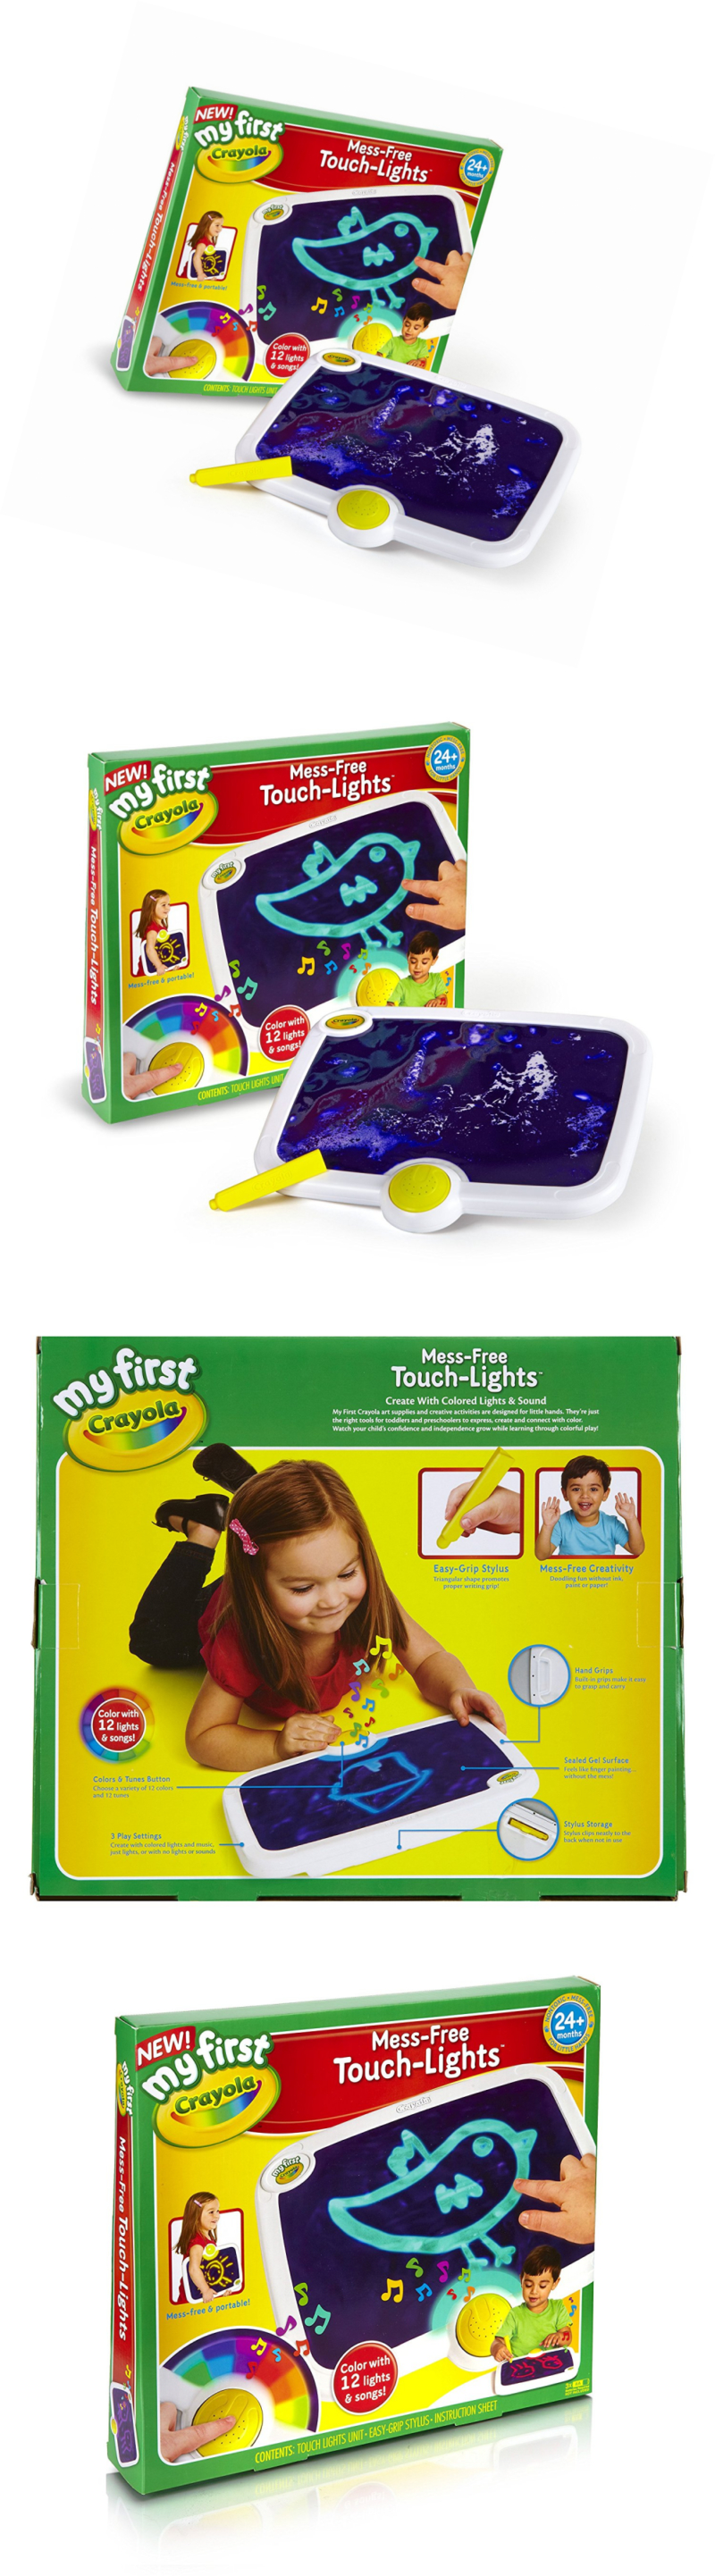 Crayons 116653: My First Crayola Mess-Free Touch Lights, Ages 2 To 4 ...